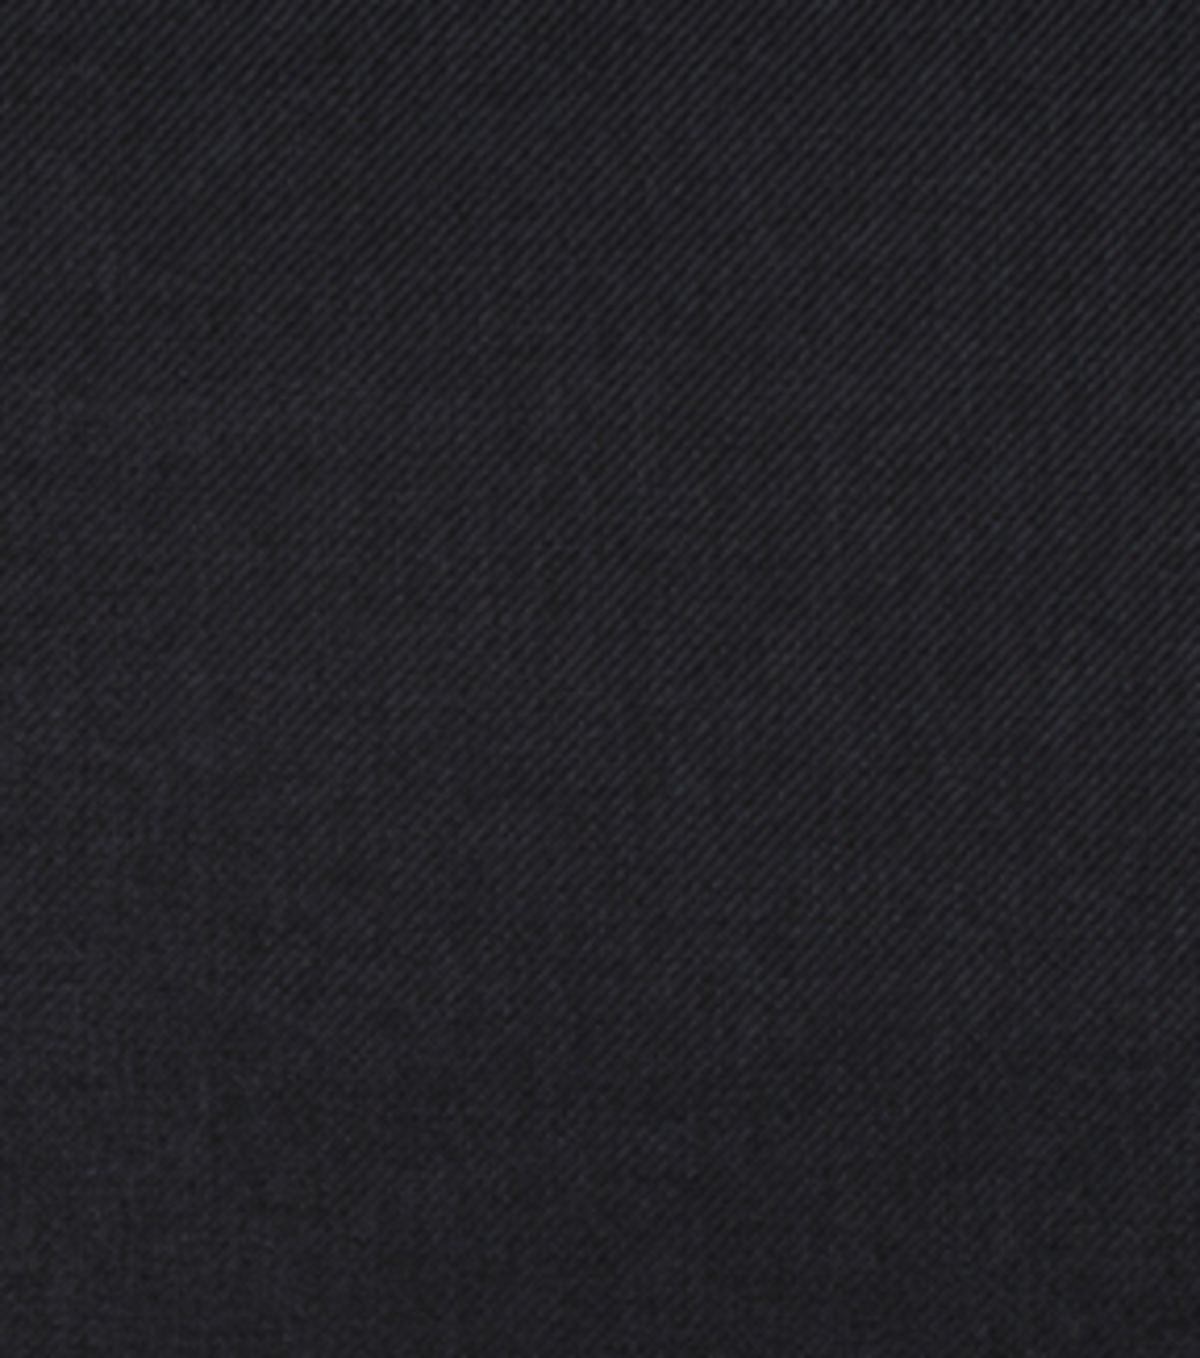 Home Decor 8\u0022x8\u0022 Fabric Swatch-Eaton Square Heston Navy